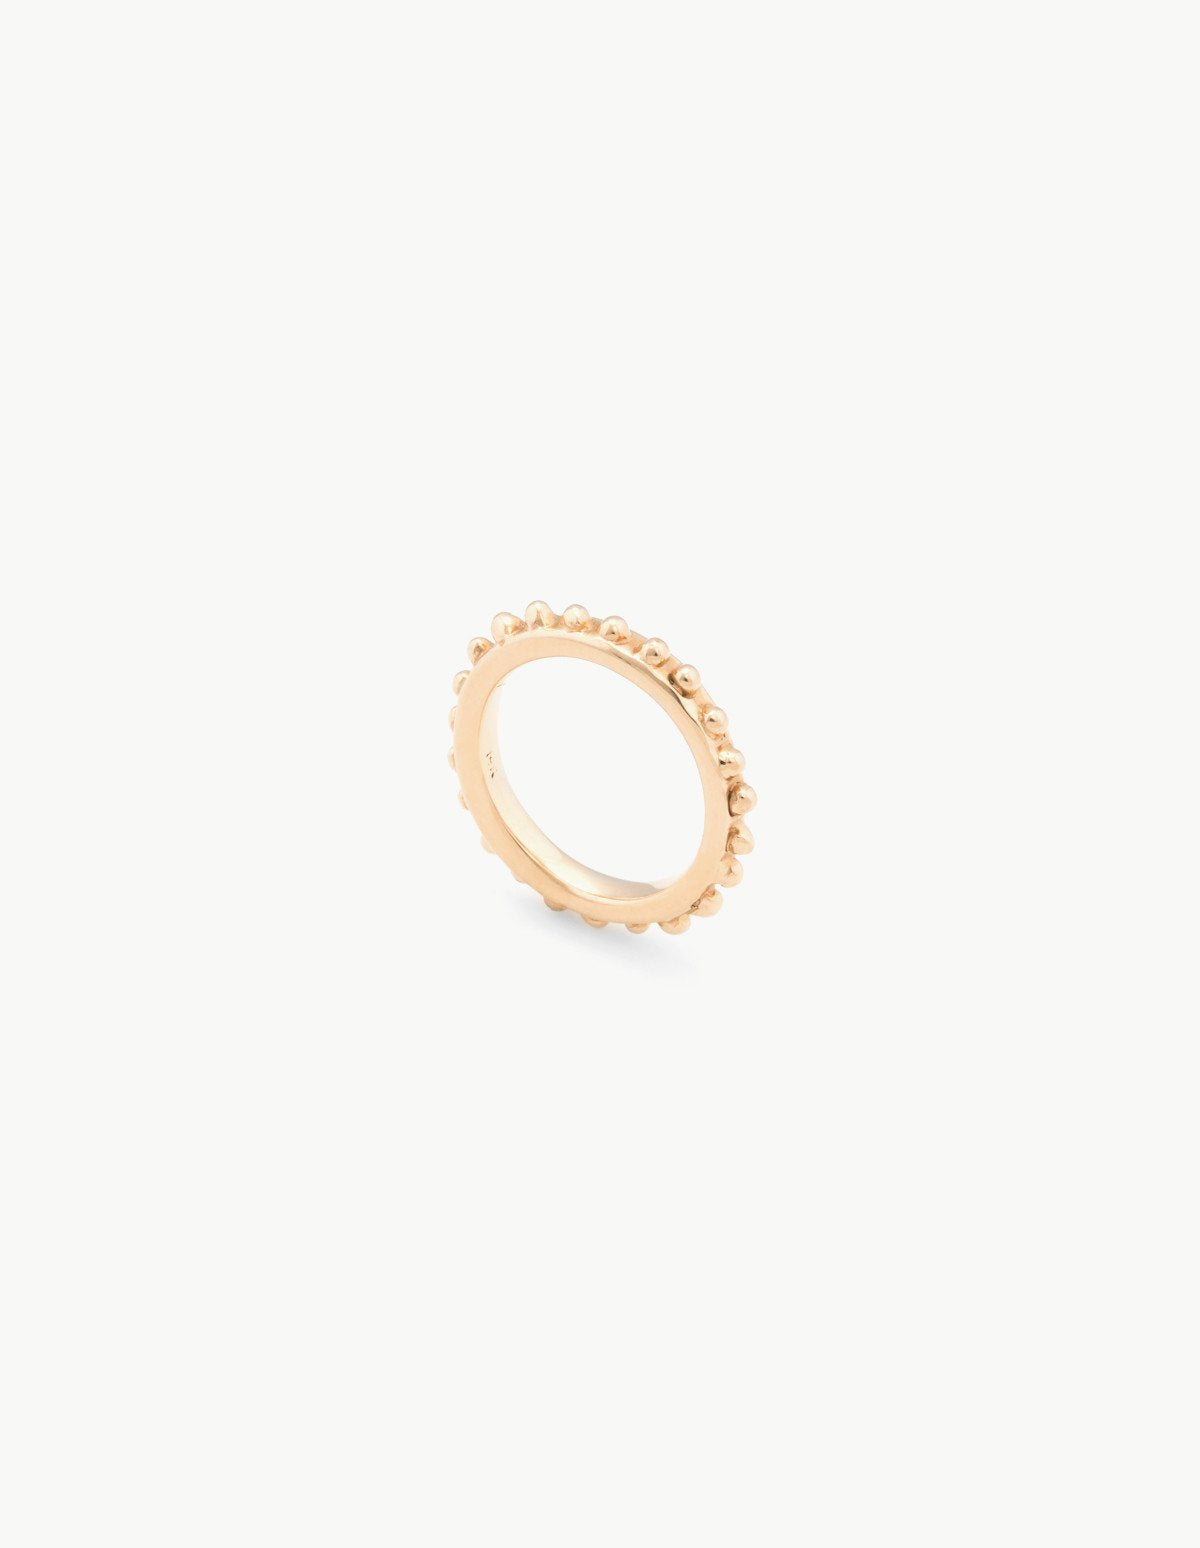 Organic Gold Beaded Band - Dream Collective